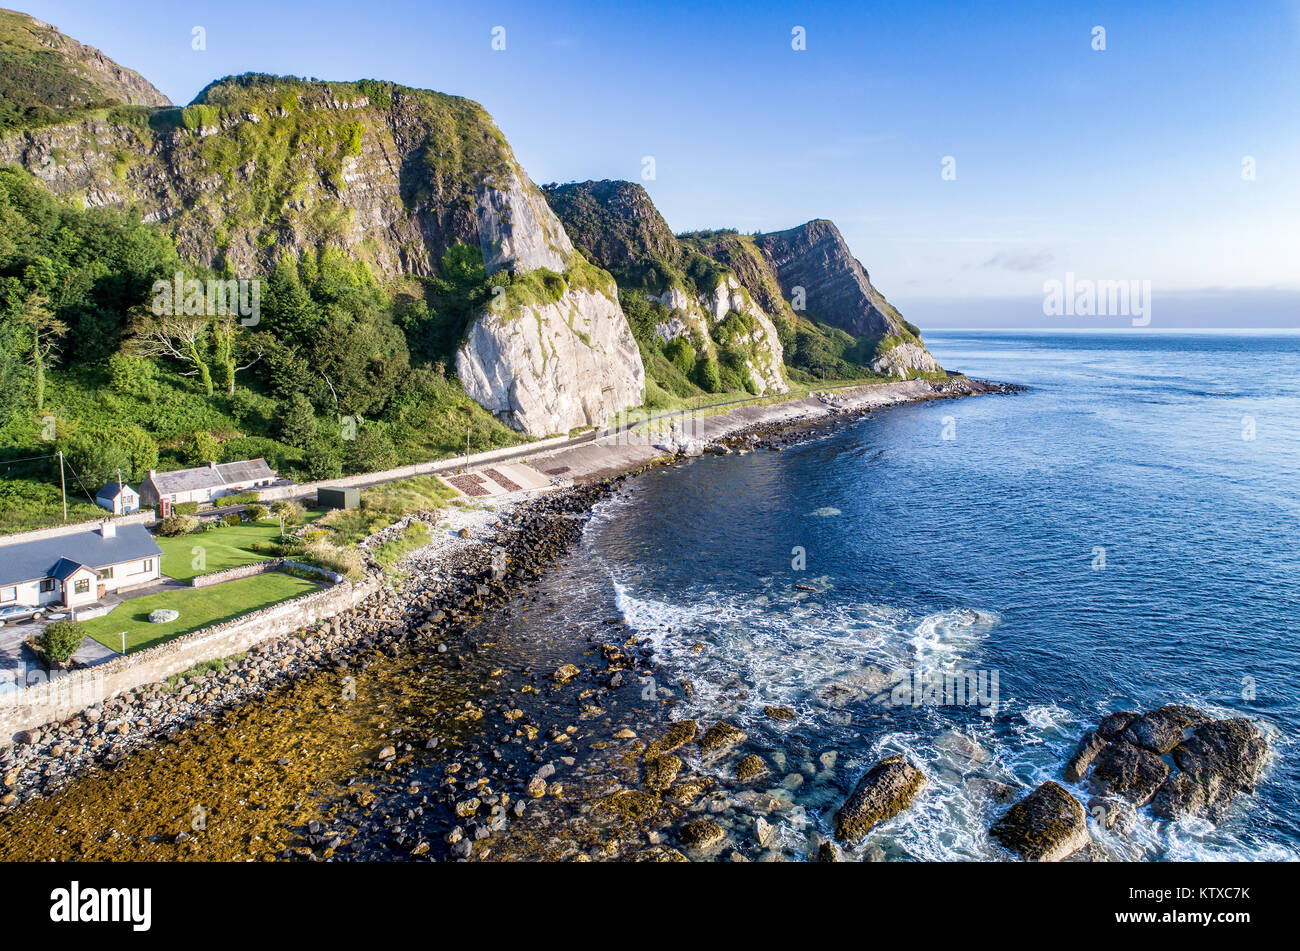 The eastern coast of Northern Ireland with cliffs and Antrim Coastal Road, a.k.a. Causeway Coastal Route. Aerial - Stock Image